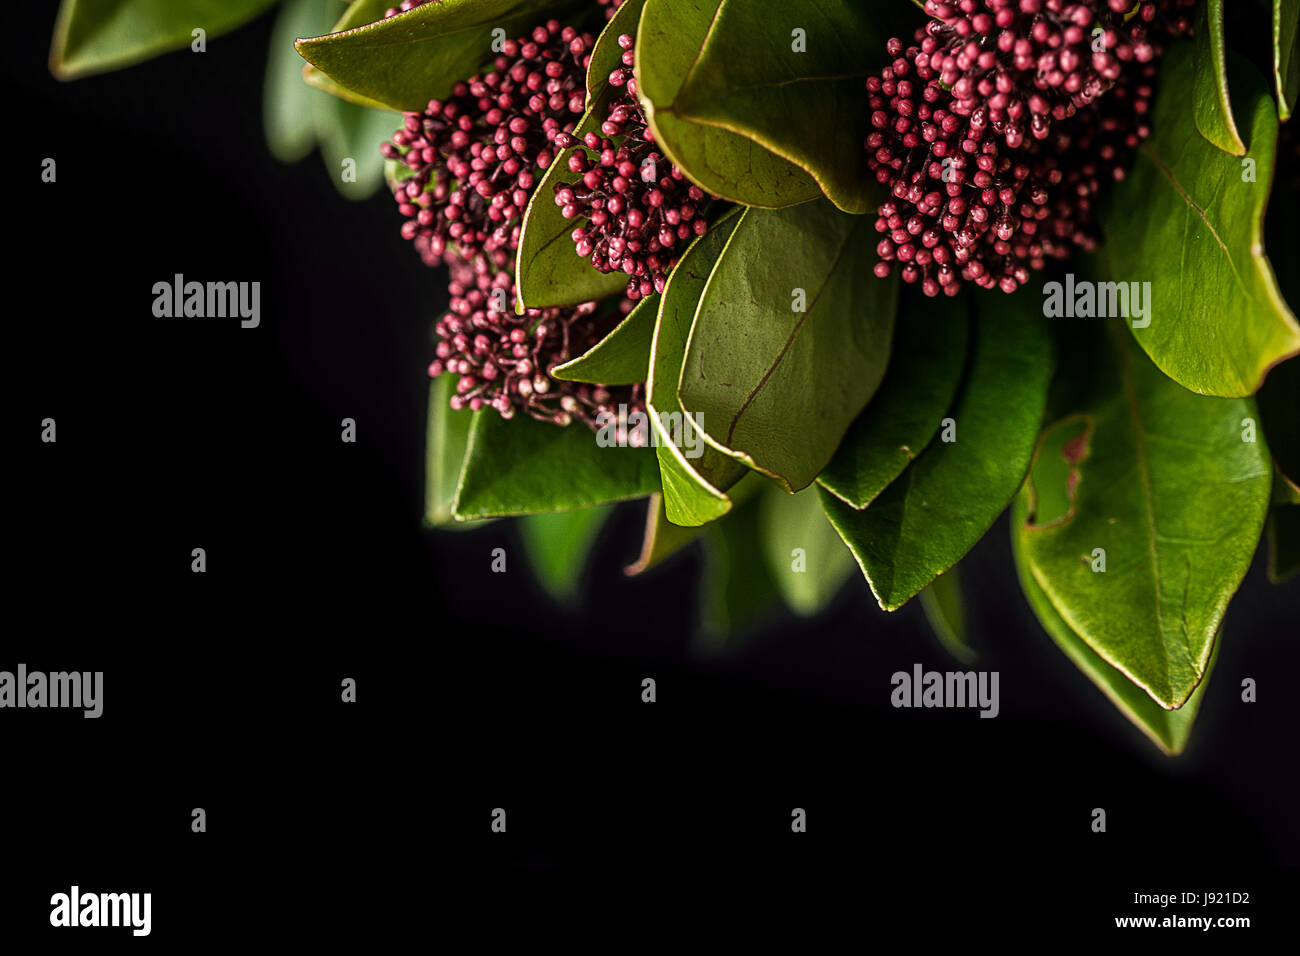 Red/pink flowers on a Skimmia - Stock Image